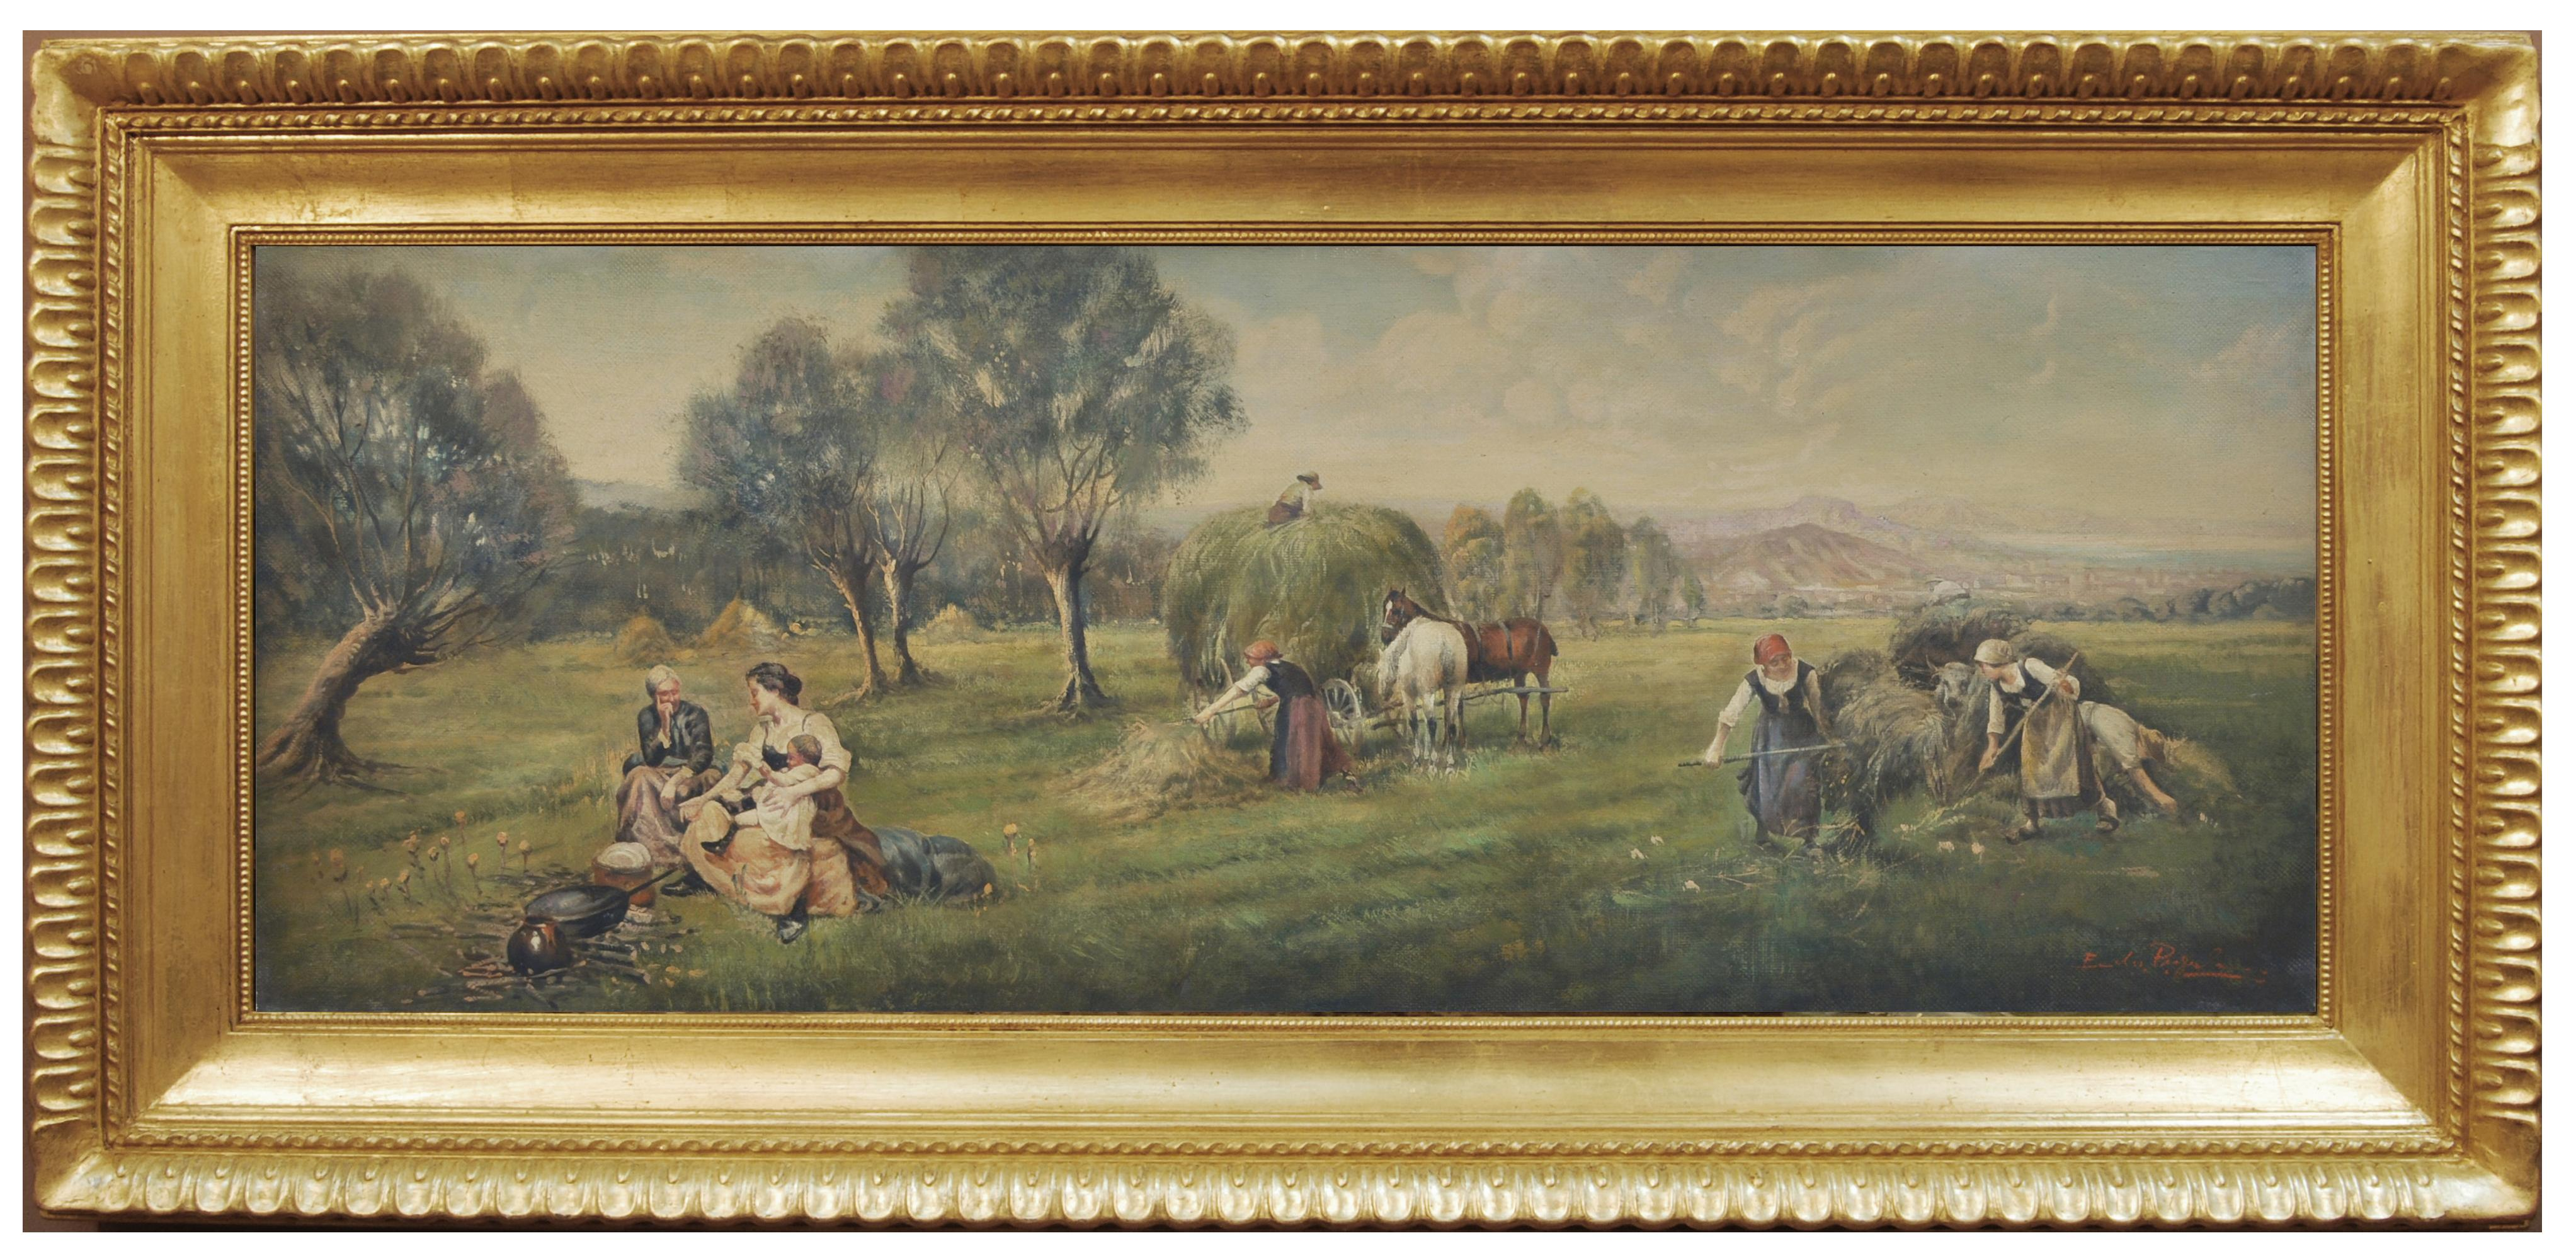 COUNTRY LANDSCAPE - French School - Italian Oil on Canvas Painting